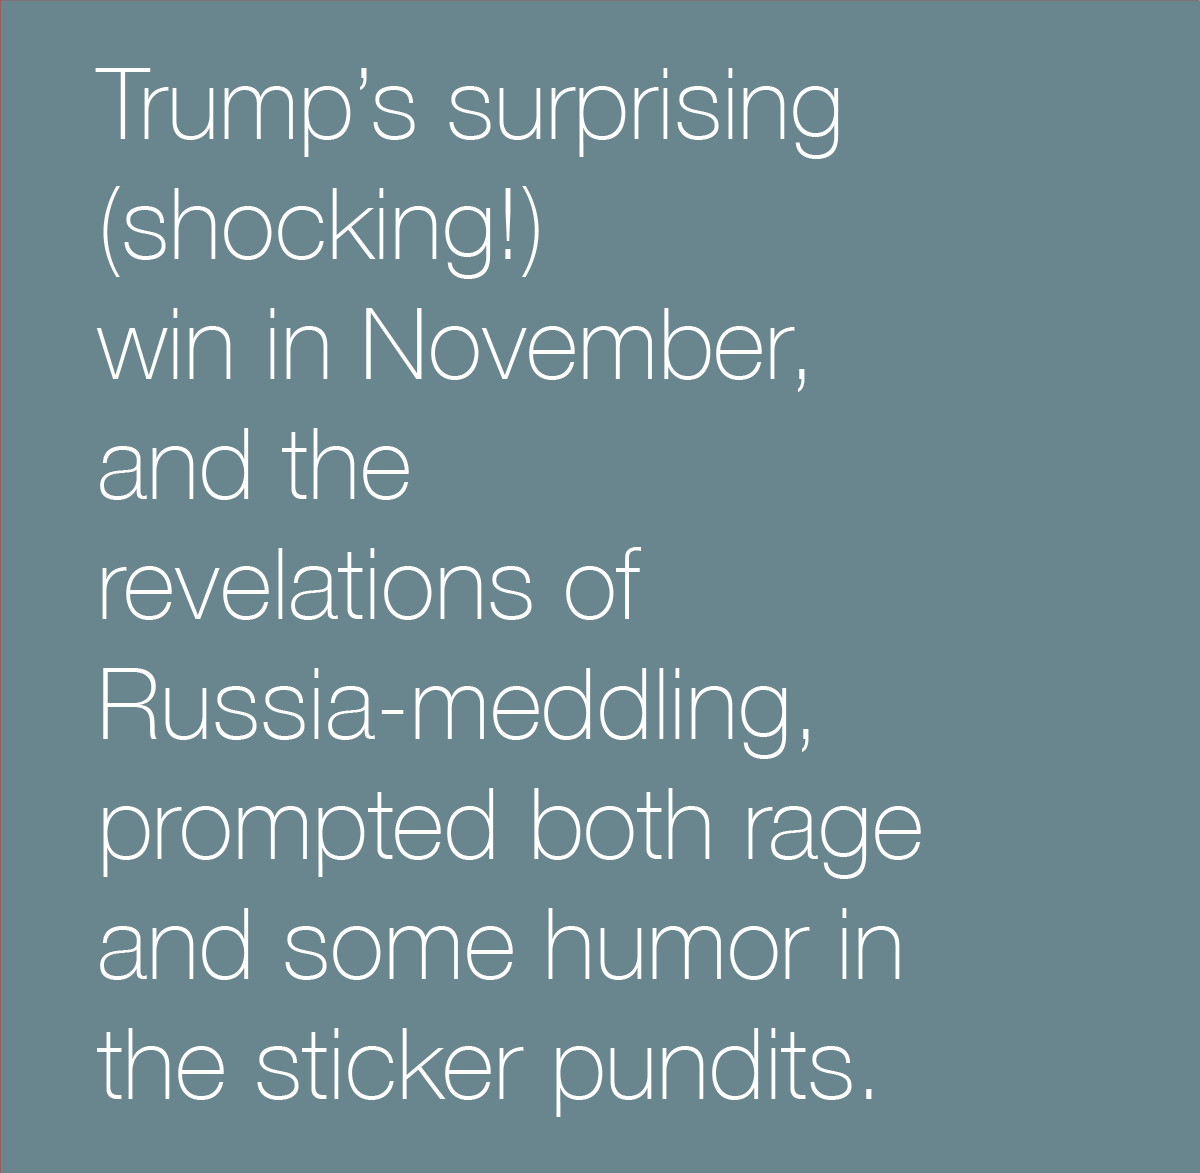 Copy of Trump's surprising (shocking!) win in November, and the revelations of Russia-meddling, prompted both rage and some humor in the sticker pundits